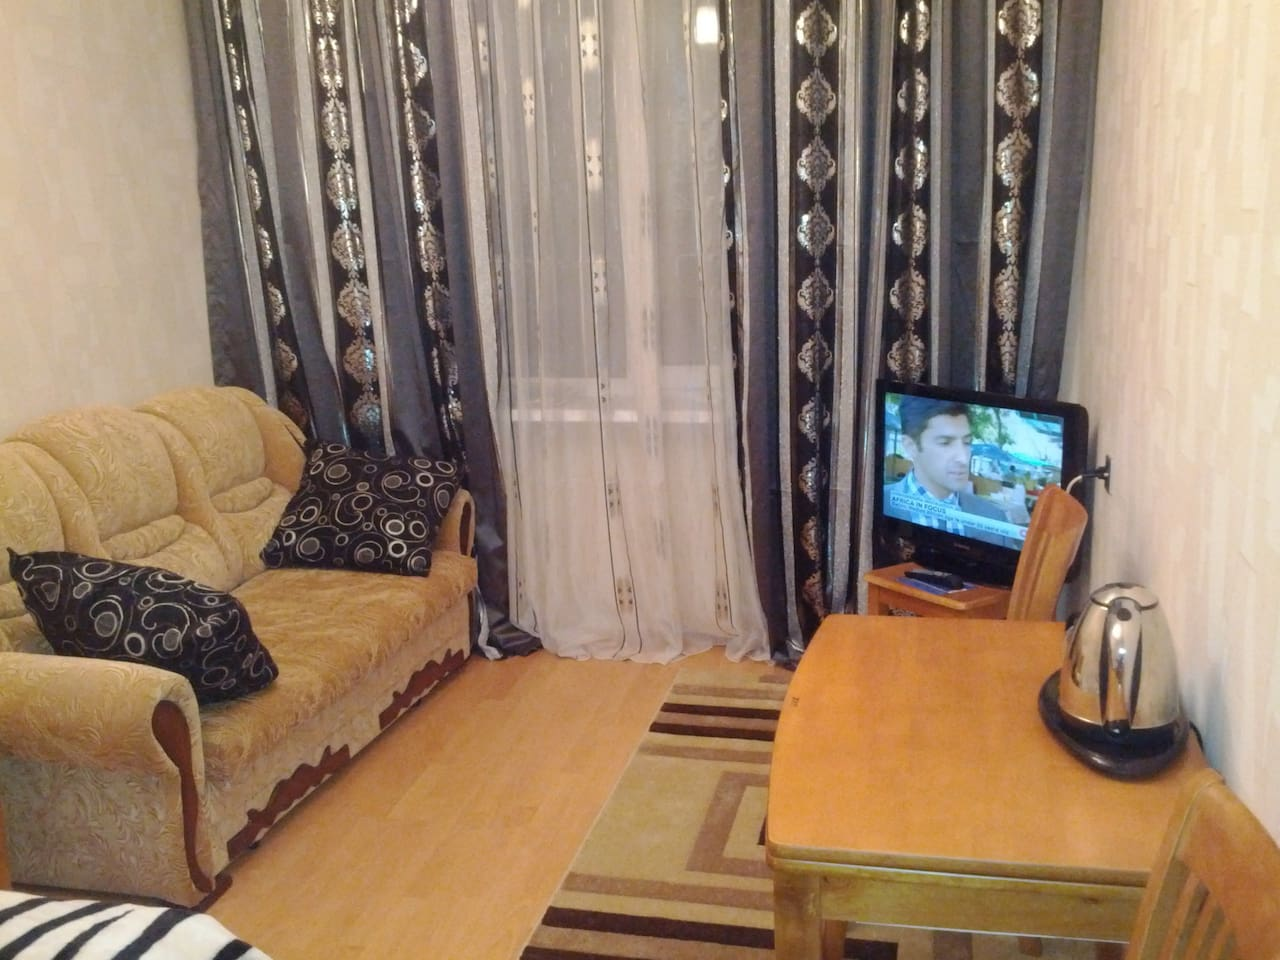 You have everything what you need for a nice stay in Baku. And keep informed watching TV:)))